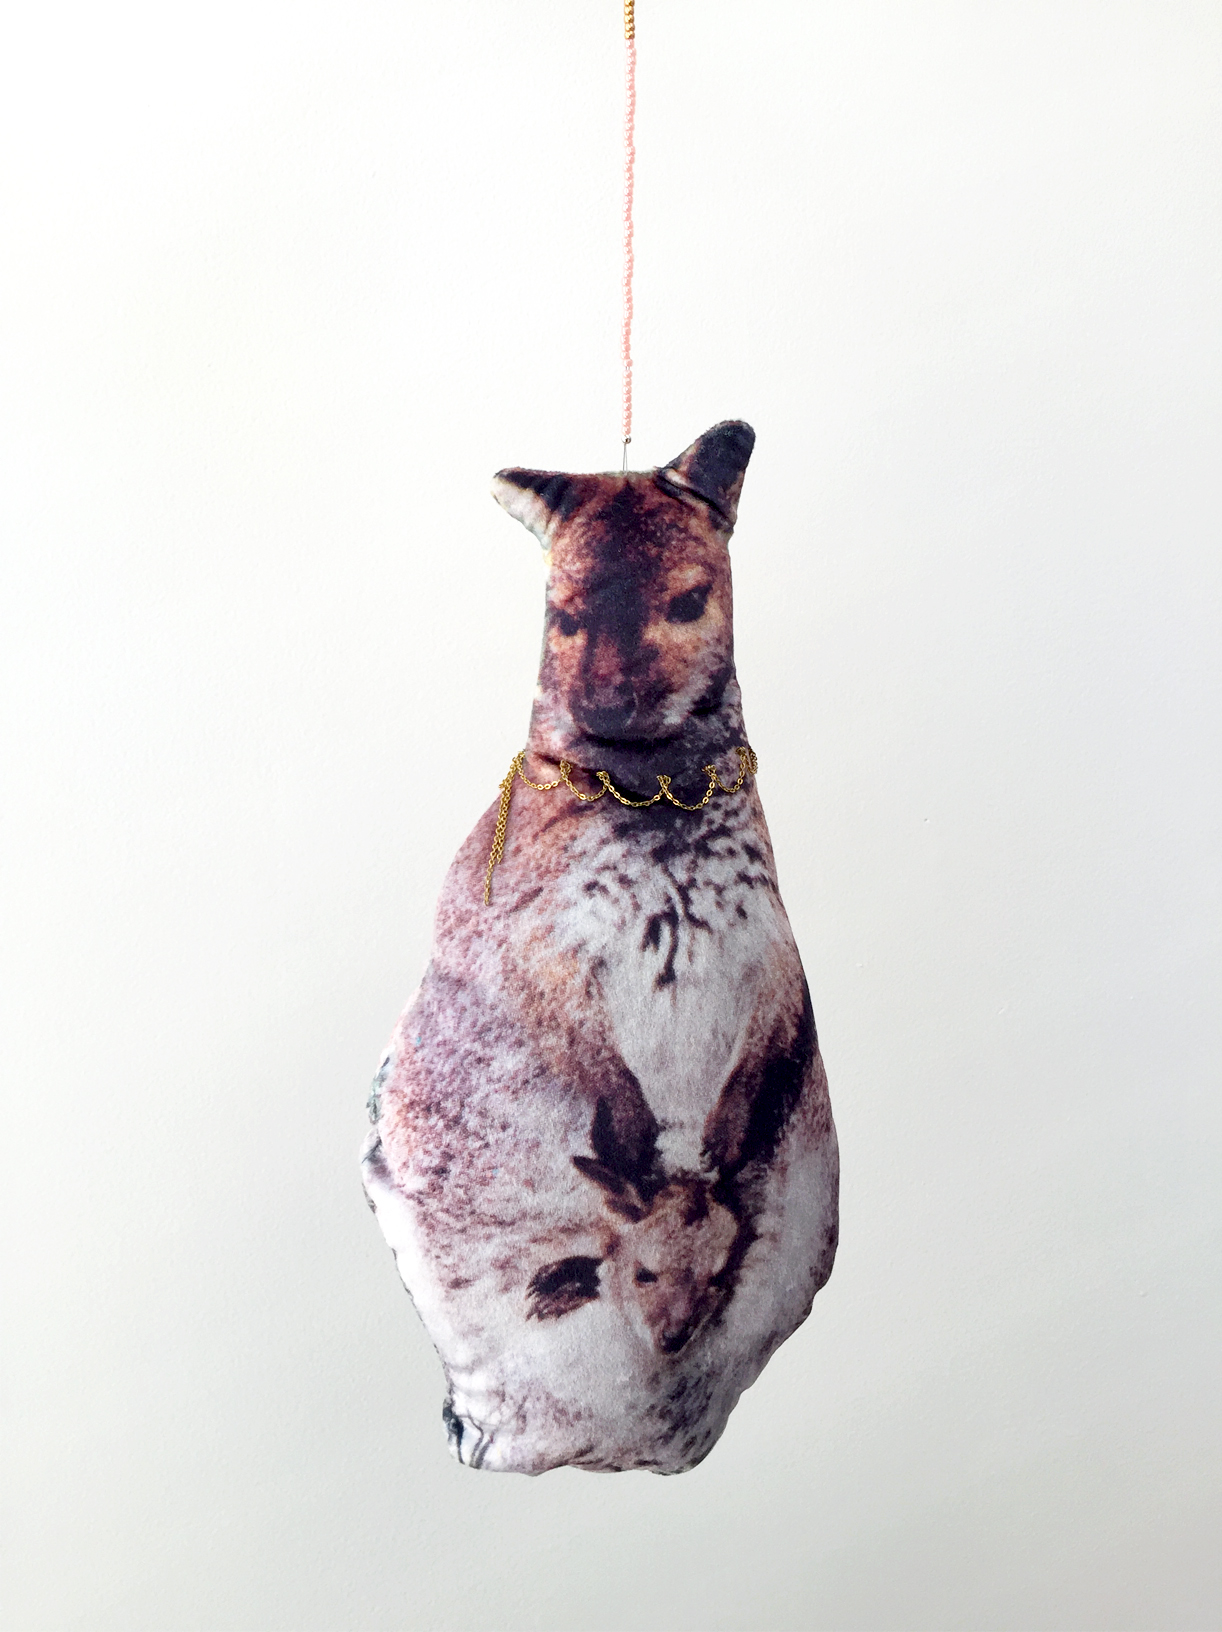 (How to) Make a Kangaroo, 2019, digitally printed velvet, found image, chain, wool, glass beads